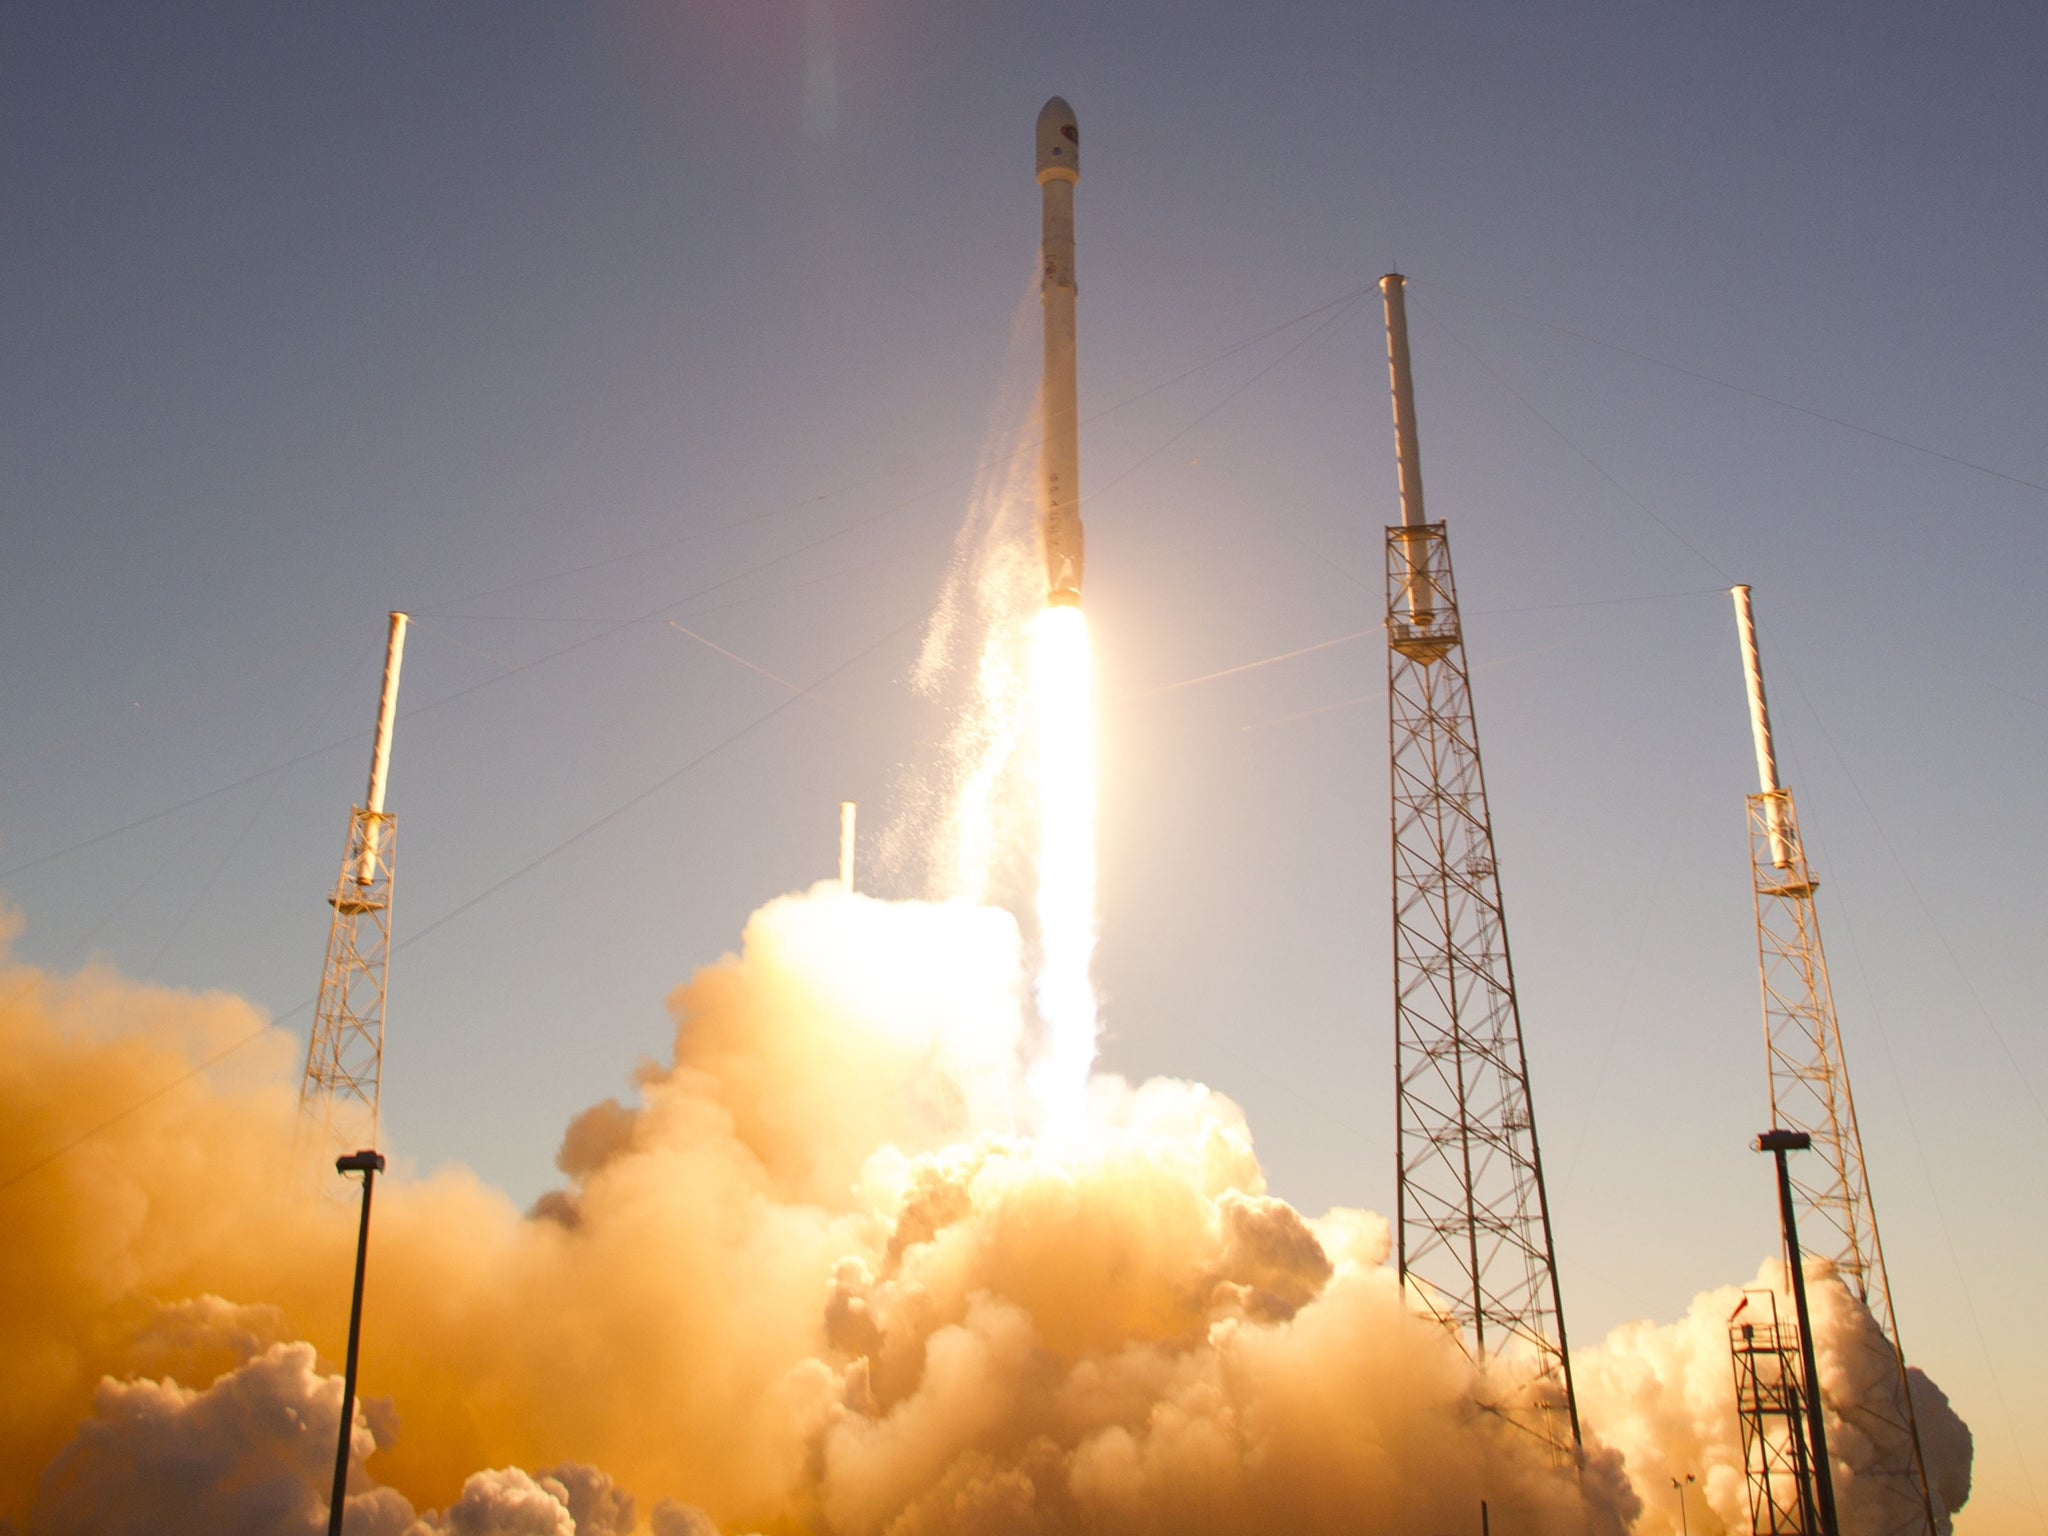 SpaceX cancels rocket barge landing amid high seas, but launches DSCOVR satellite